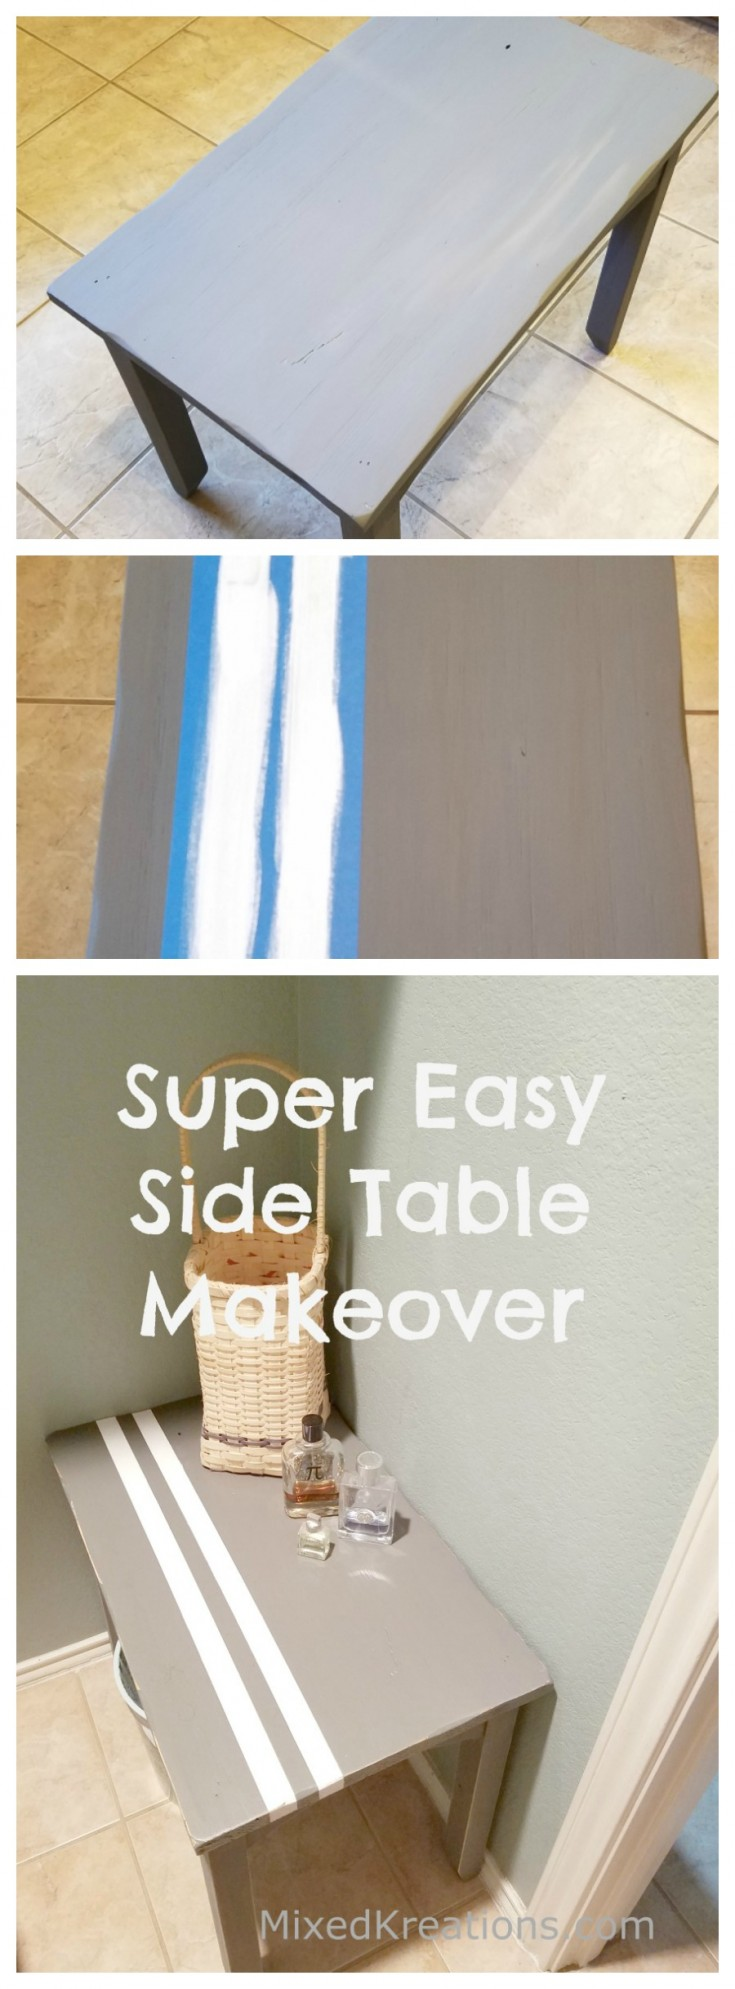 super easy side table makeover / how to makeover a small table / diy side table makeover #UpcycleFurniture #upcycledtable #makeover #upcycling MixedKreations.com